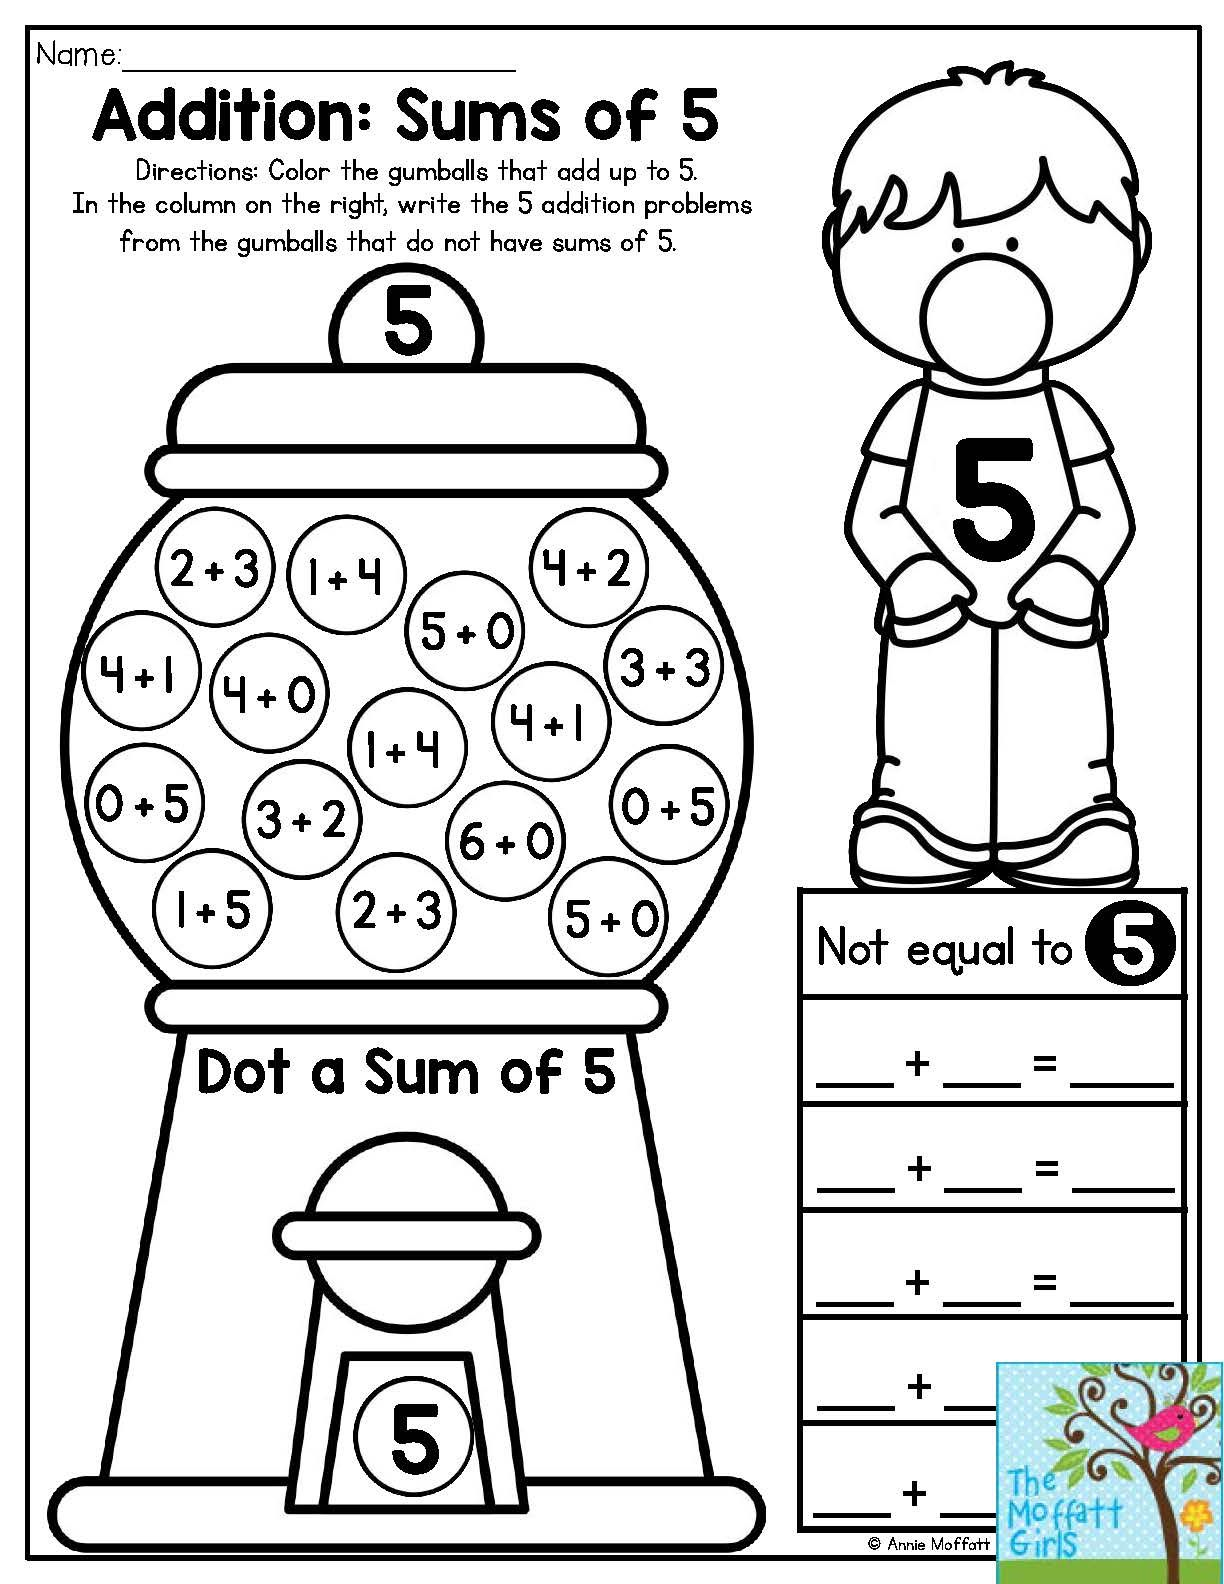 Bubble Gum Numbers Addition Sums Of 5 Color The